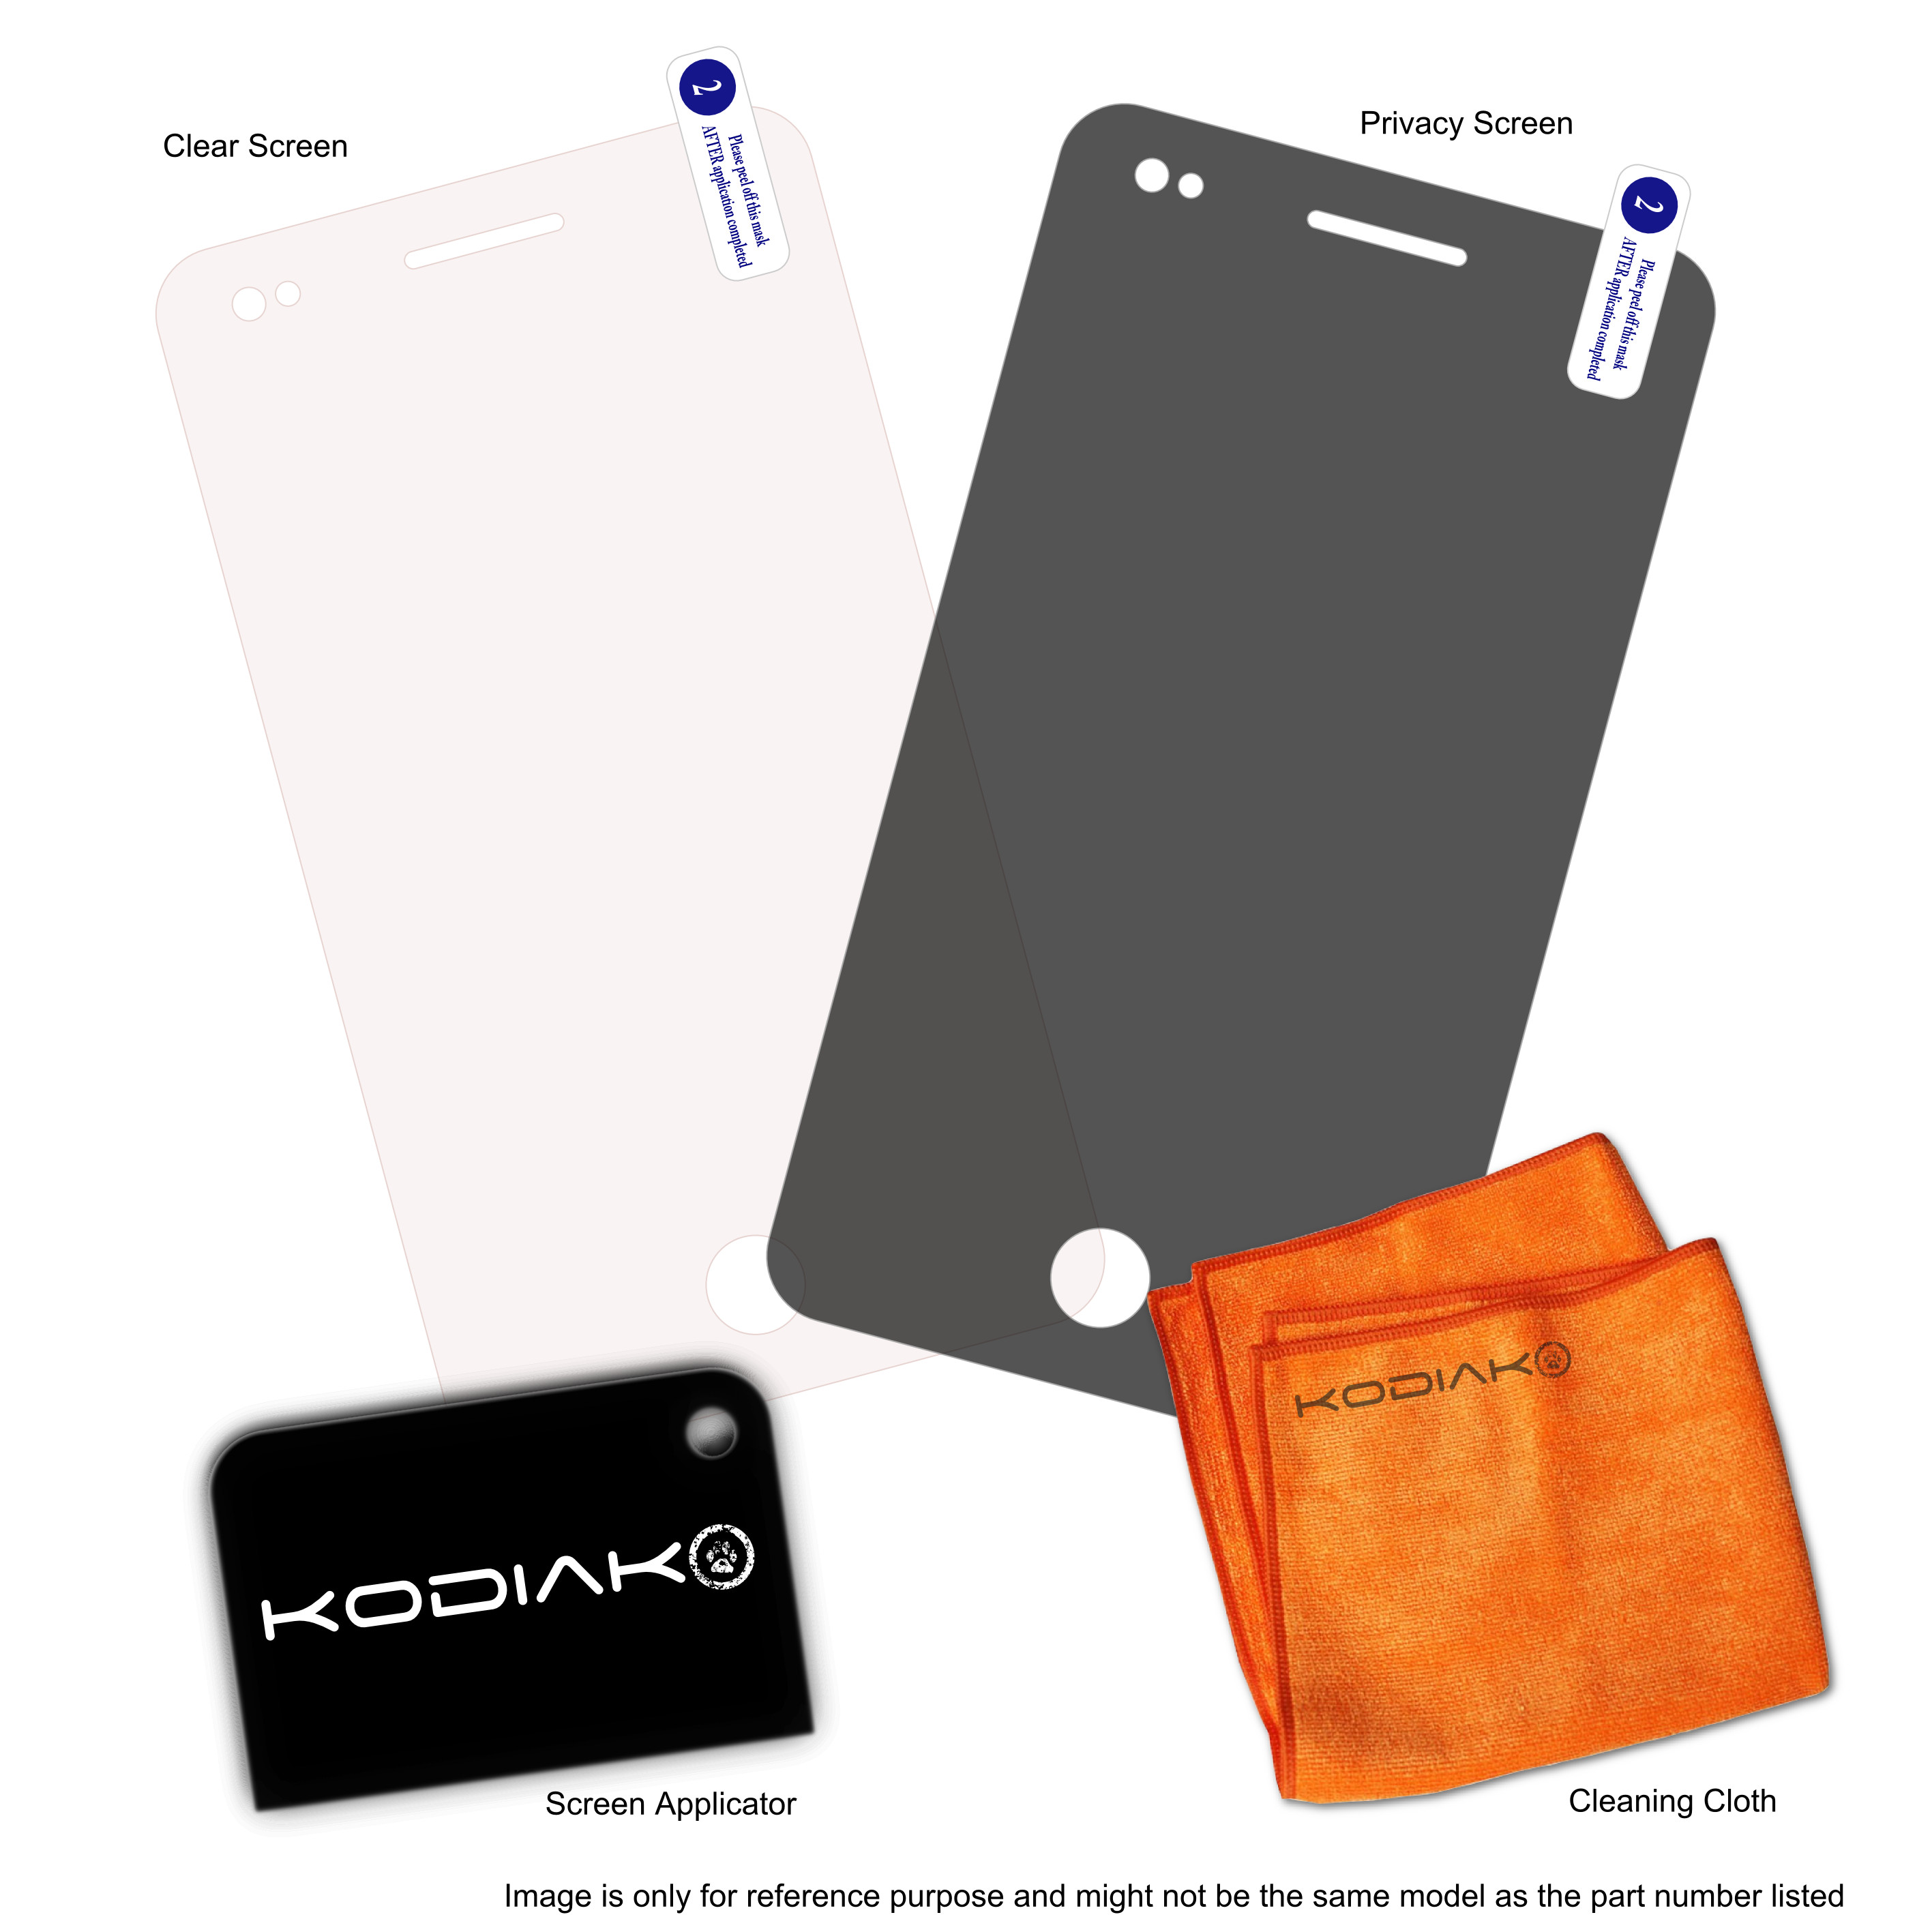 Original Kodiak Screen Protector  iPOD Touch iProtect 2-Package (Clear + Privacy)